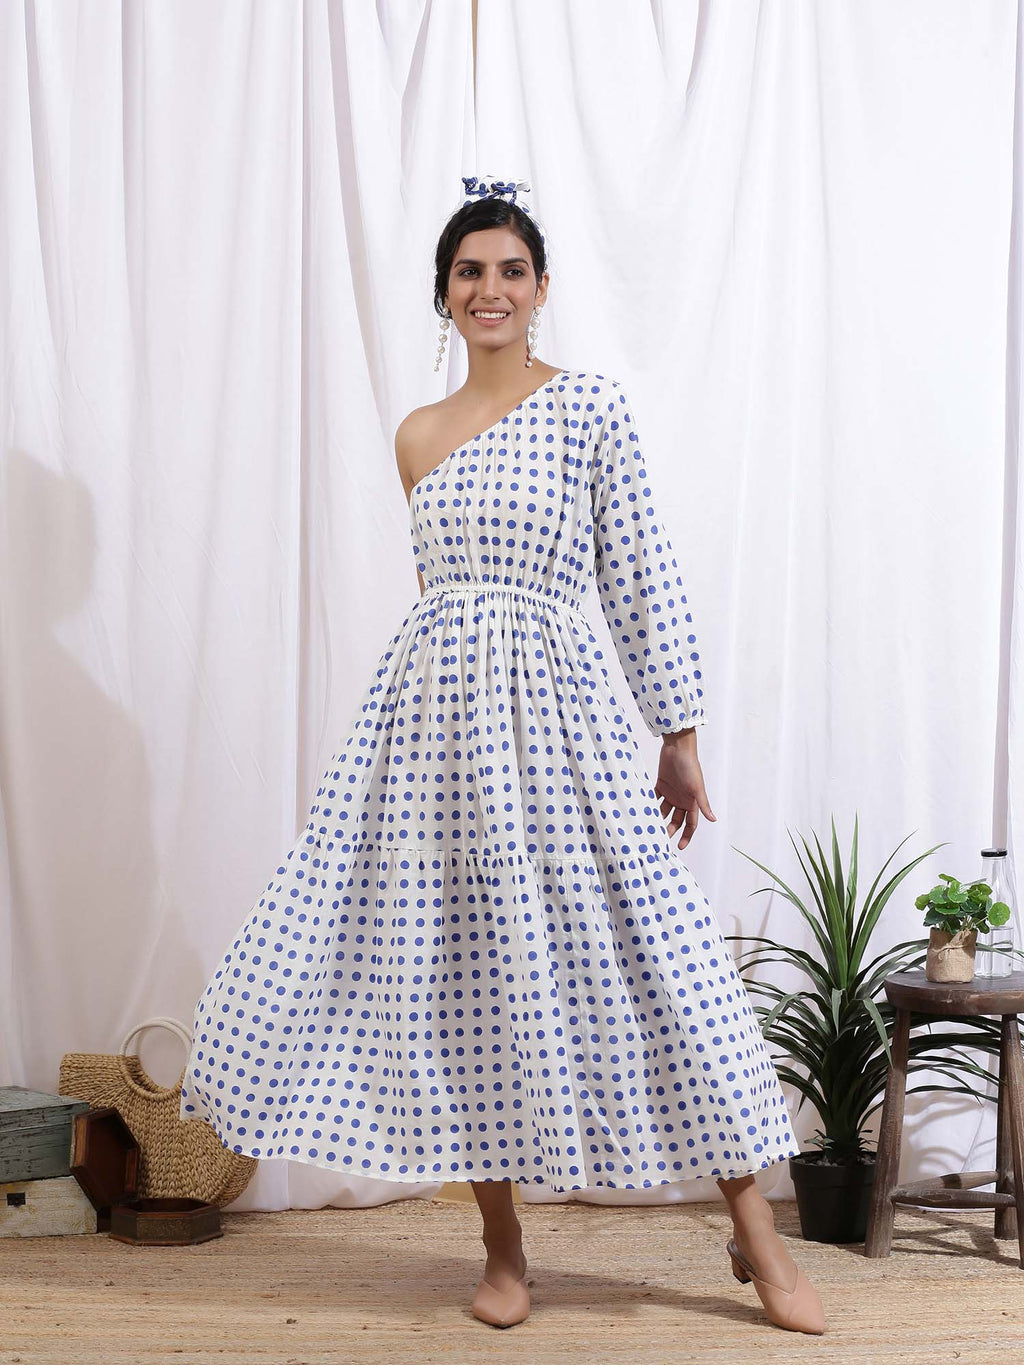 Blue and White Love Me Polka Dress - Riviera Closet